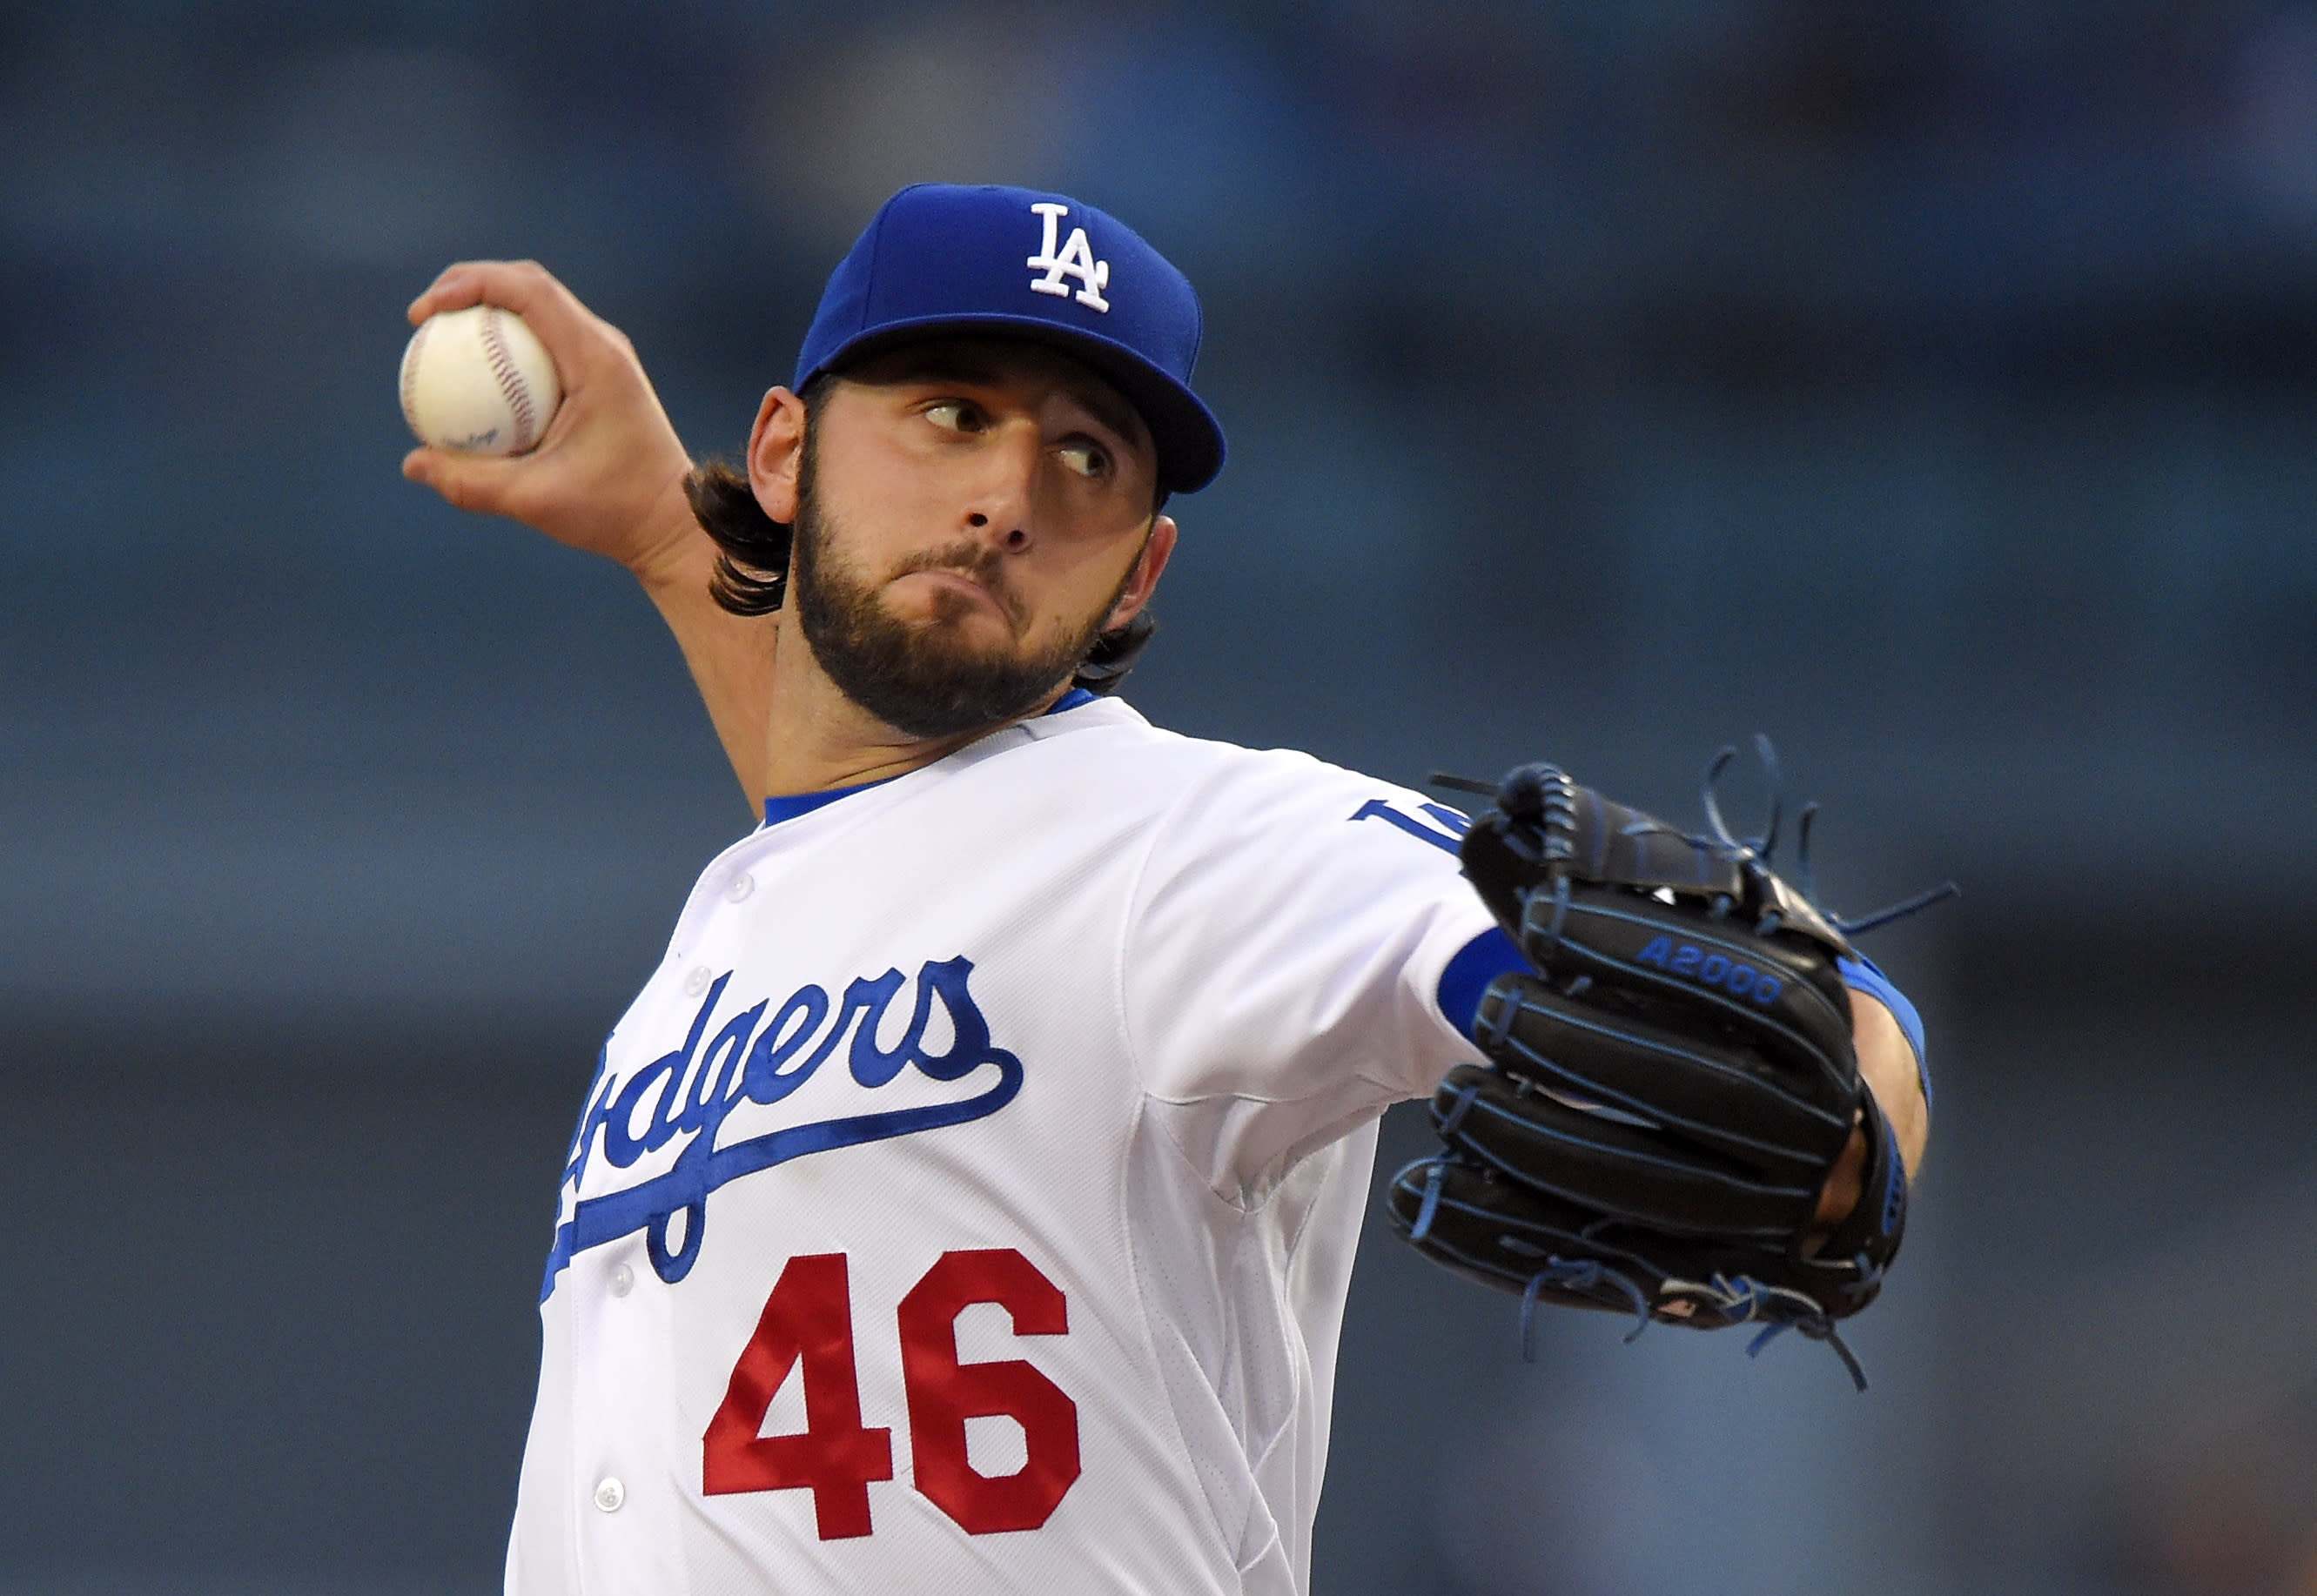 Bolsinger shuts down Padres, Pederson hits HR as Dodgers win